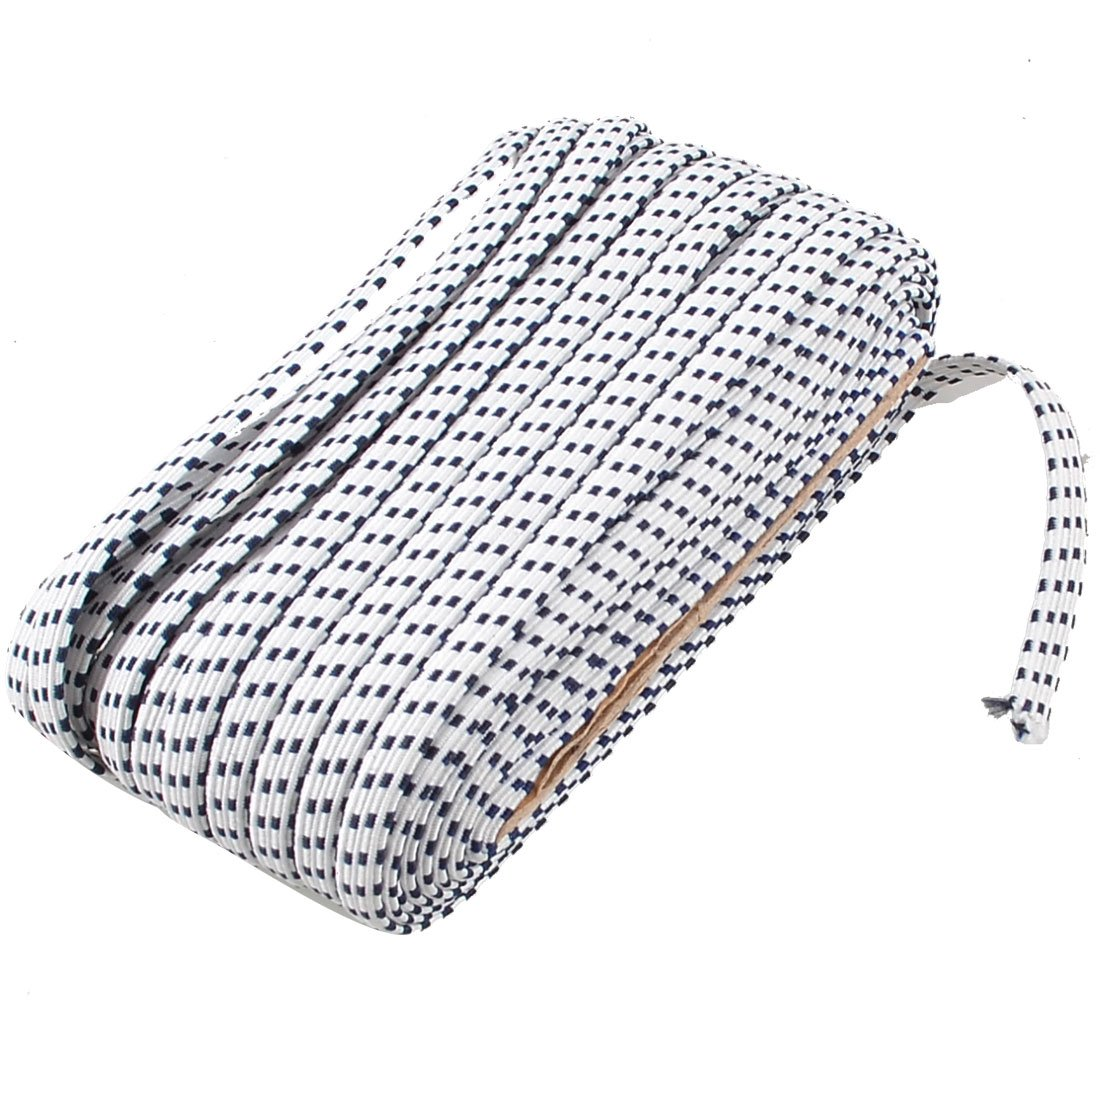 Trousers 5mm Width White Black Square Print Garment Elastic Stretchy Band 20 Meters uxcell a12120500ux0026